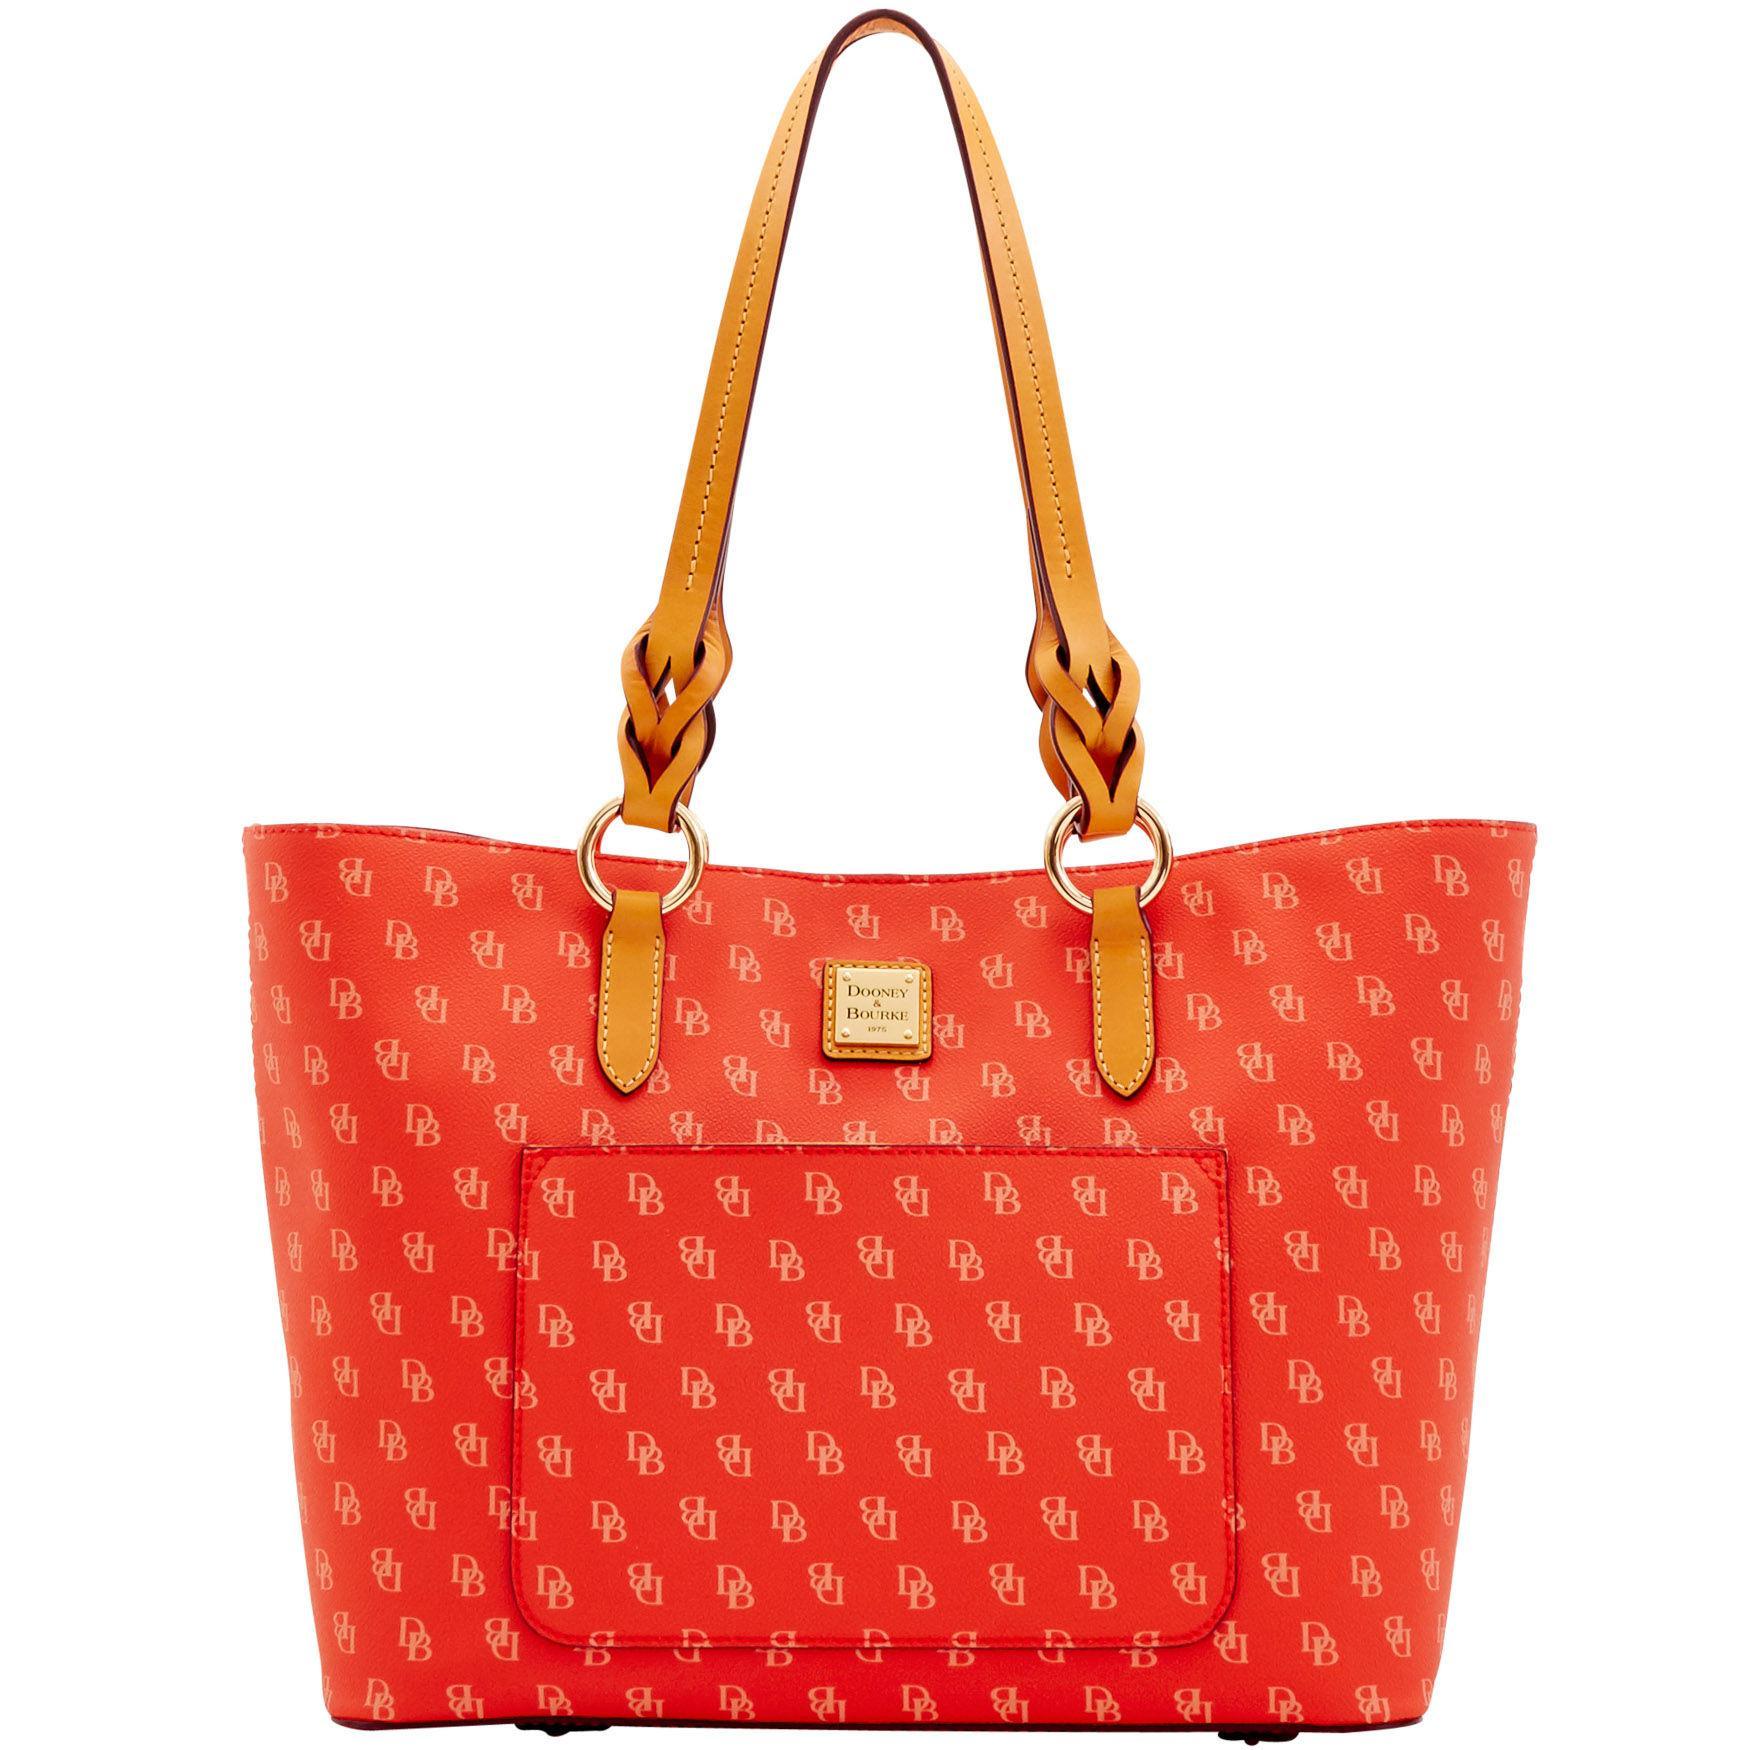 Lyst - Dooney   Bourke Blakely Tammy Tote in Red - Save 52% a497f687b37a9